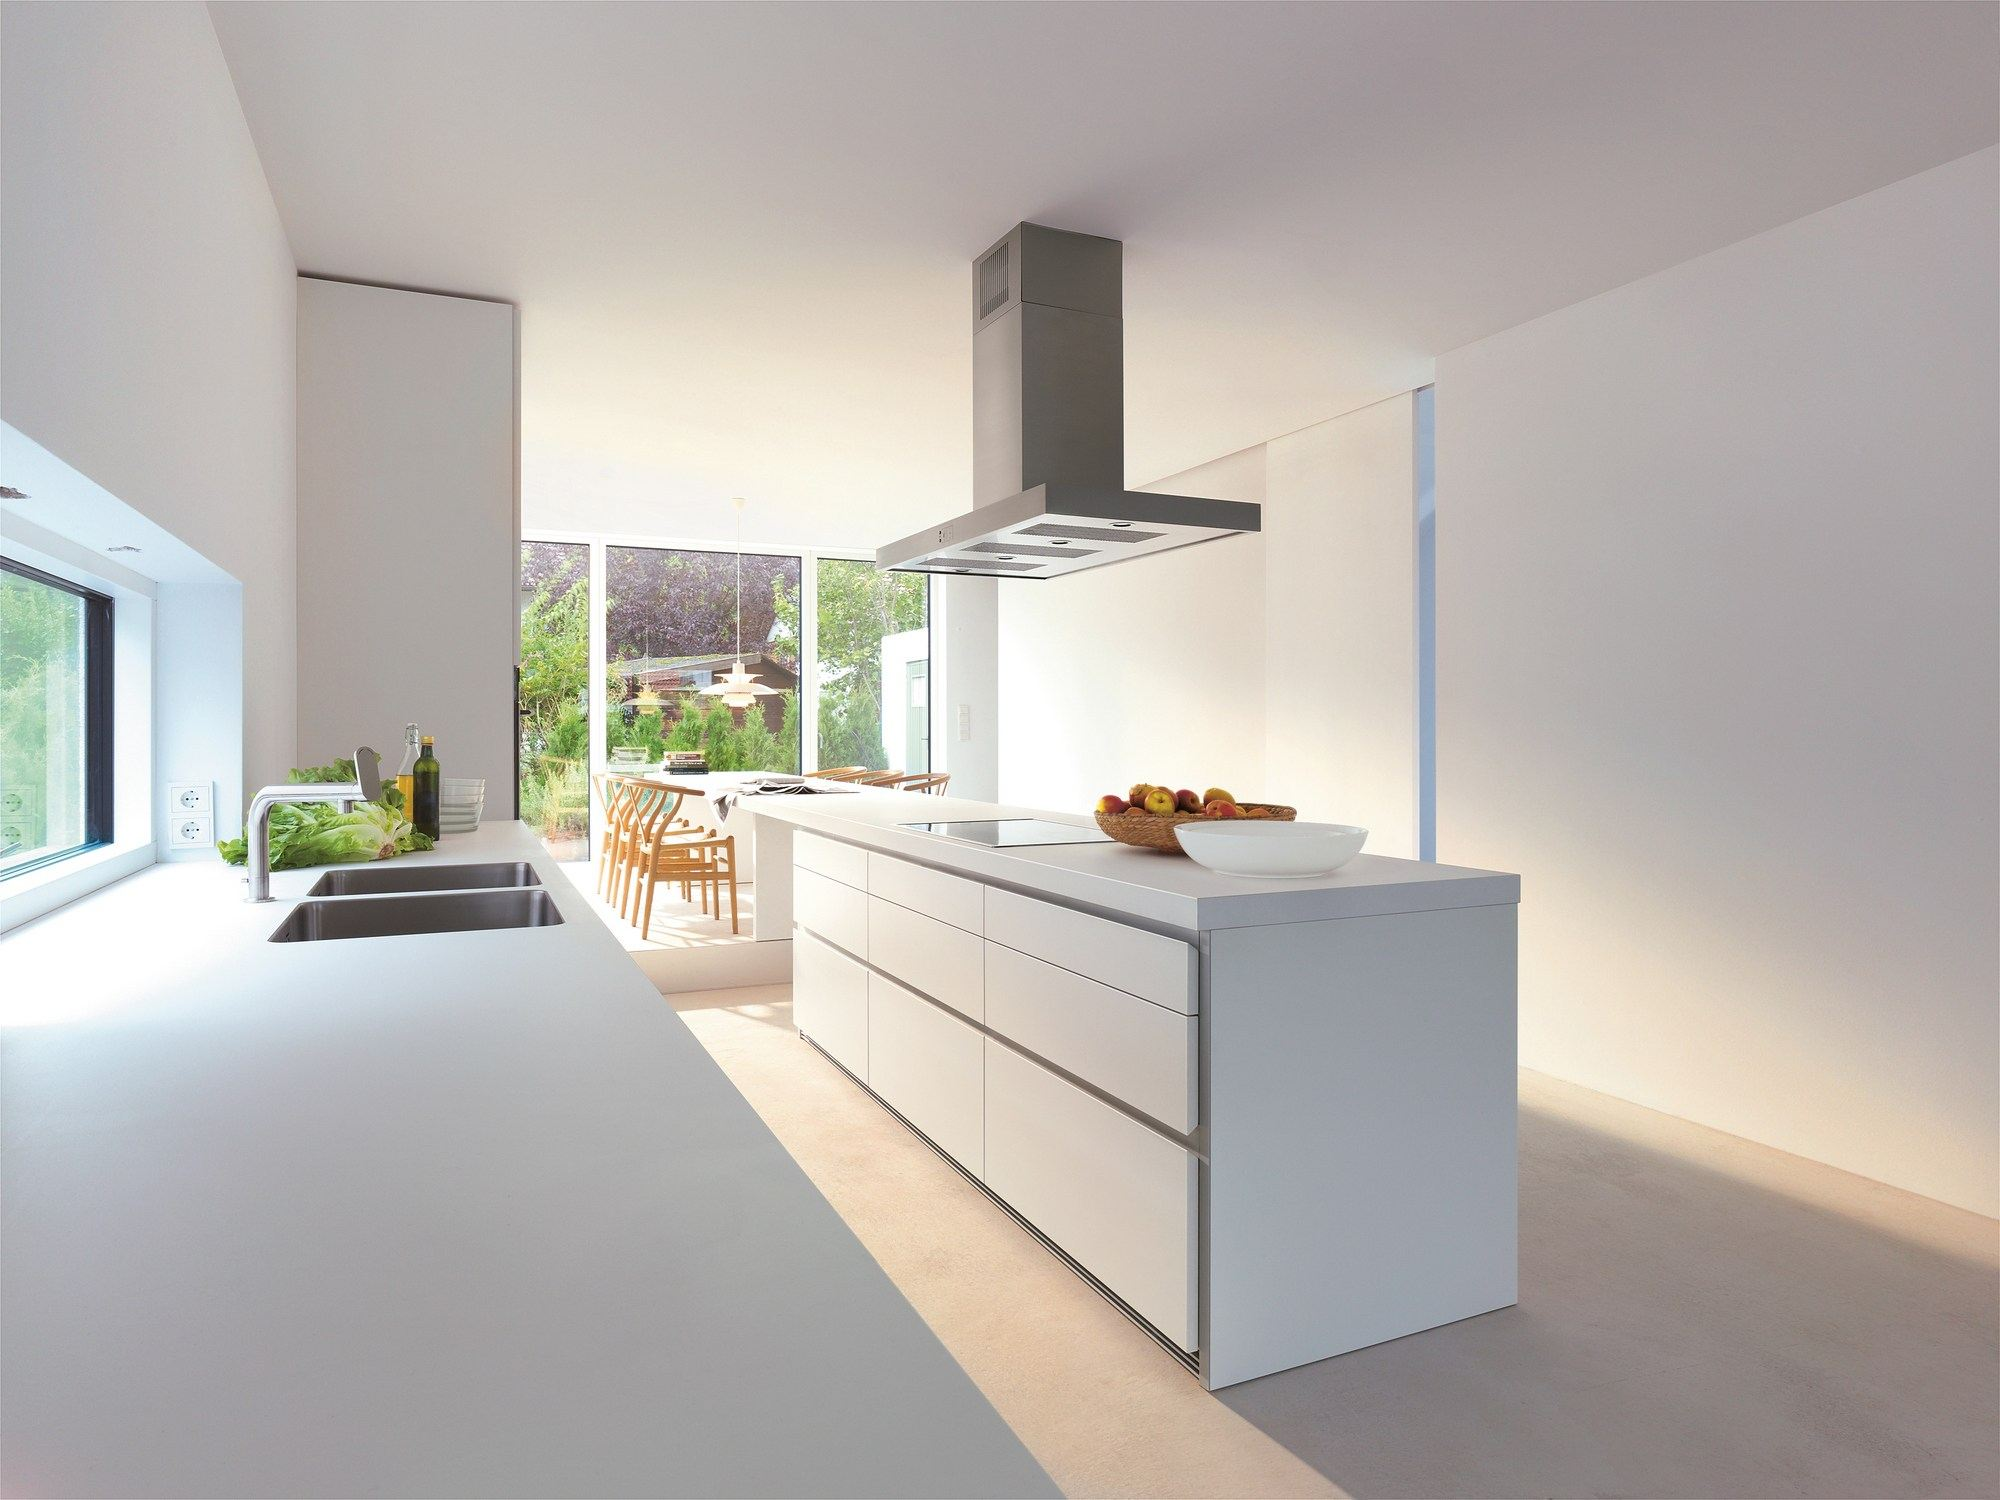 B1 kitchen with island by bulthaup - Cucine bianche moderne ...